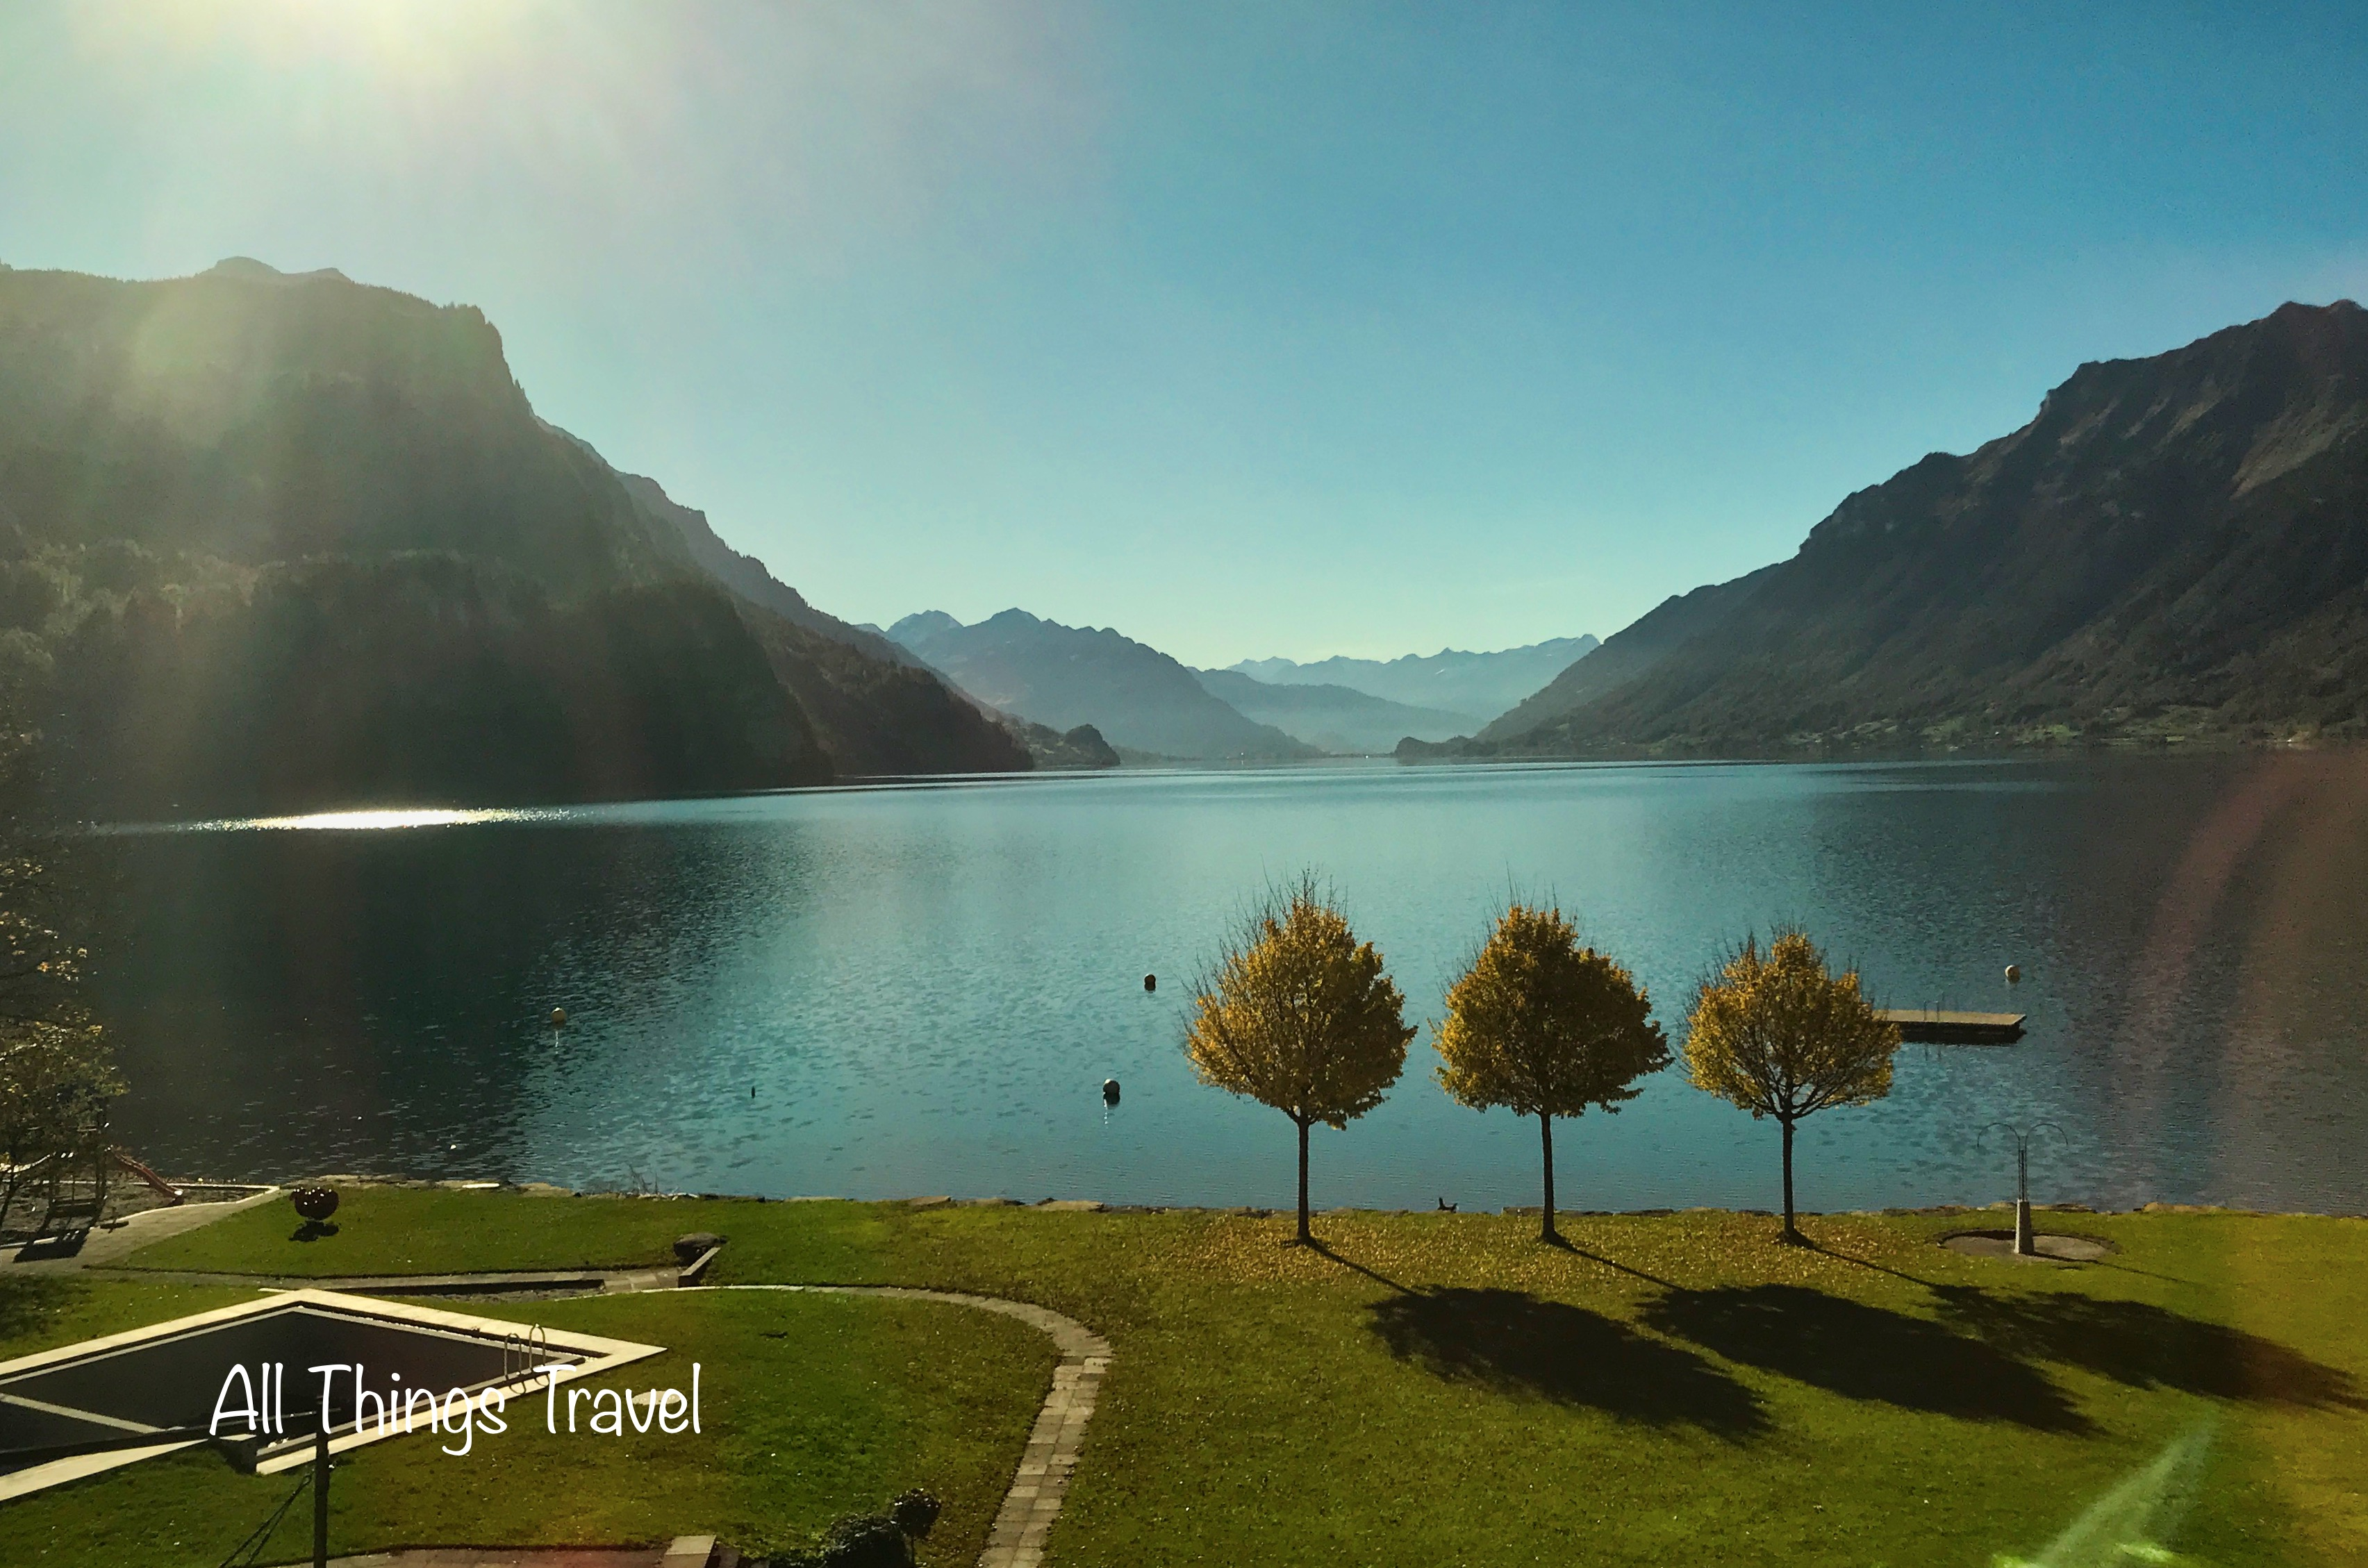 IMG_0818 & Eiger | All Things Travel